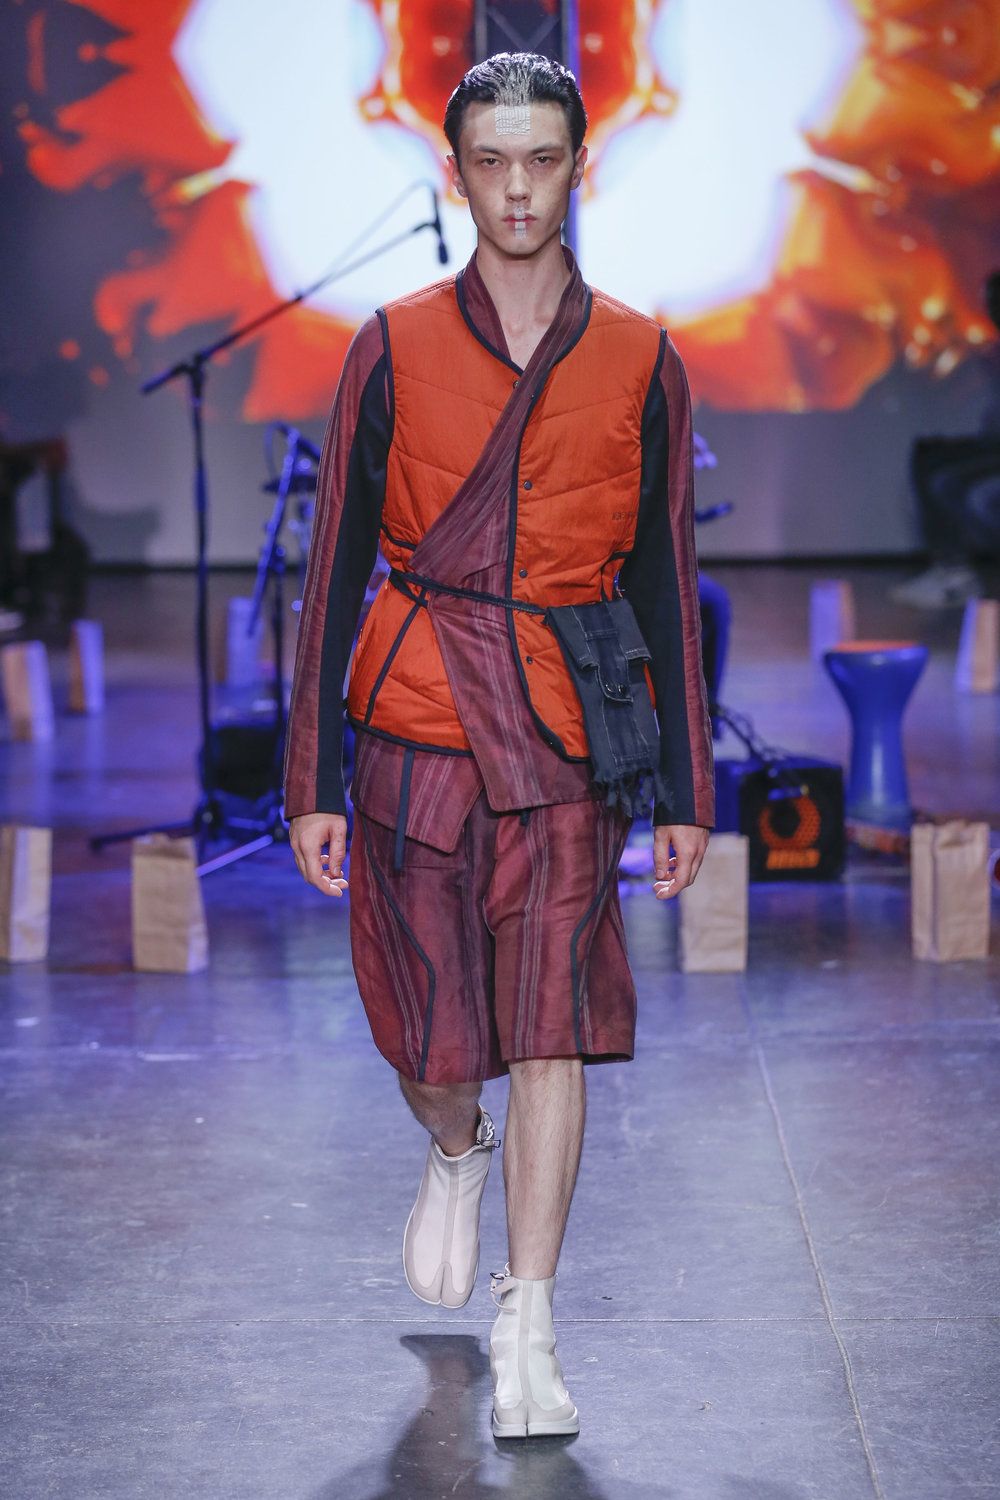 LOOK 19   ARC Atlas Vest  / Orange   ARC Kimono Shirt  / Maroon Stripe   ARC Kyoto Short  / Maroon Stripe   ARC Shoulder Bag  (Worn on Waist)   ARC Apollo Tabi Boot